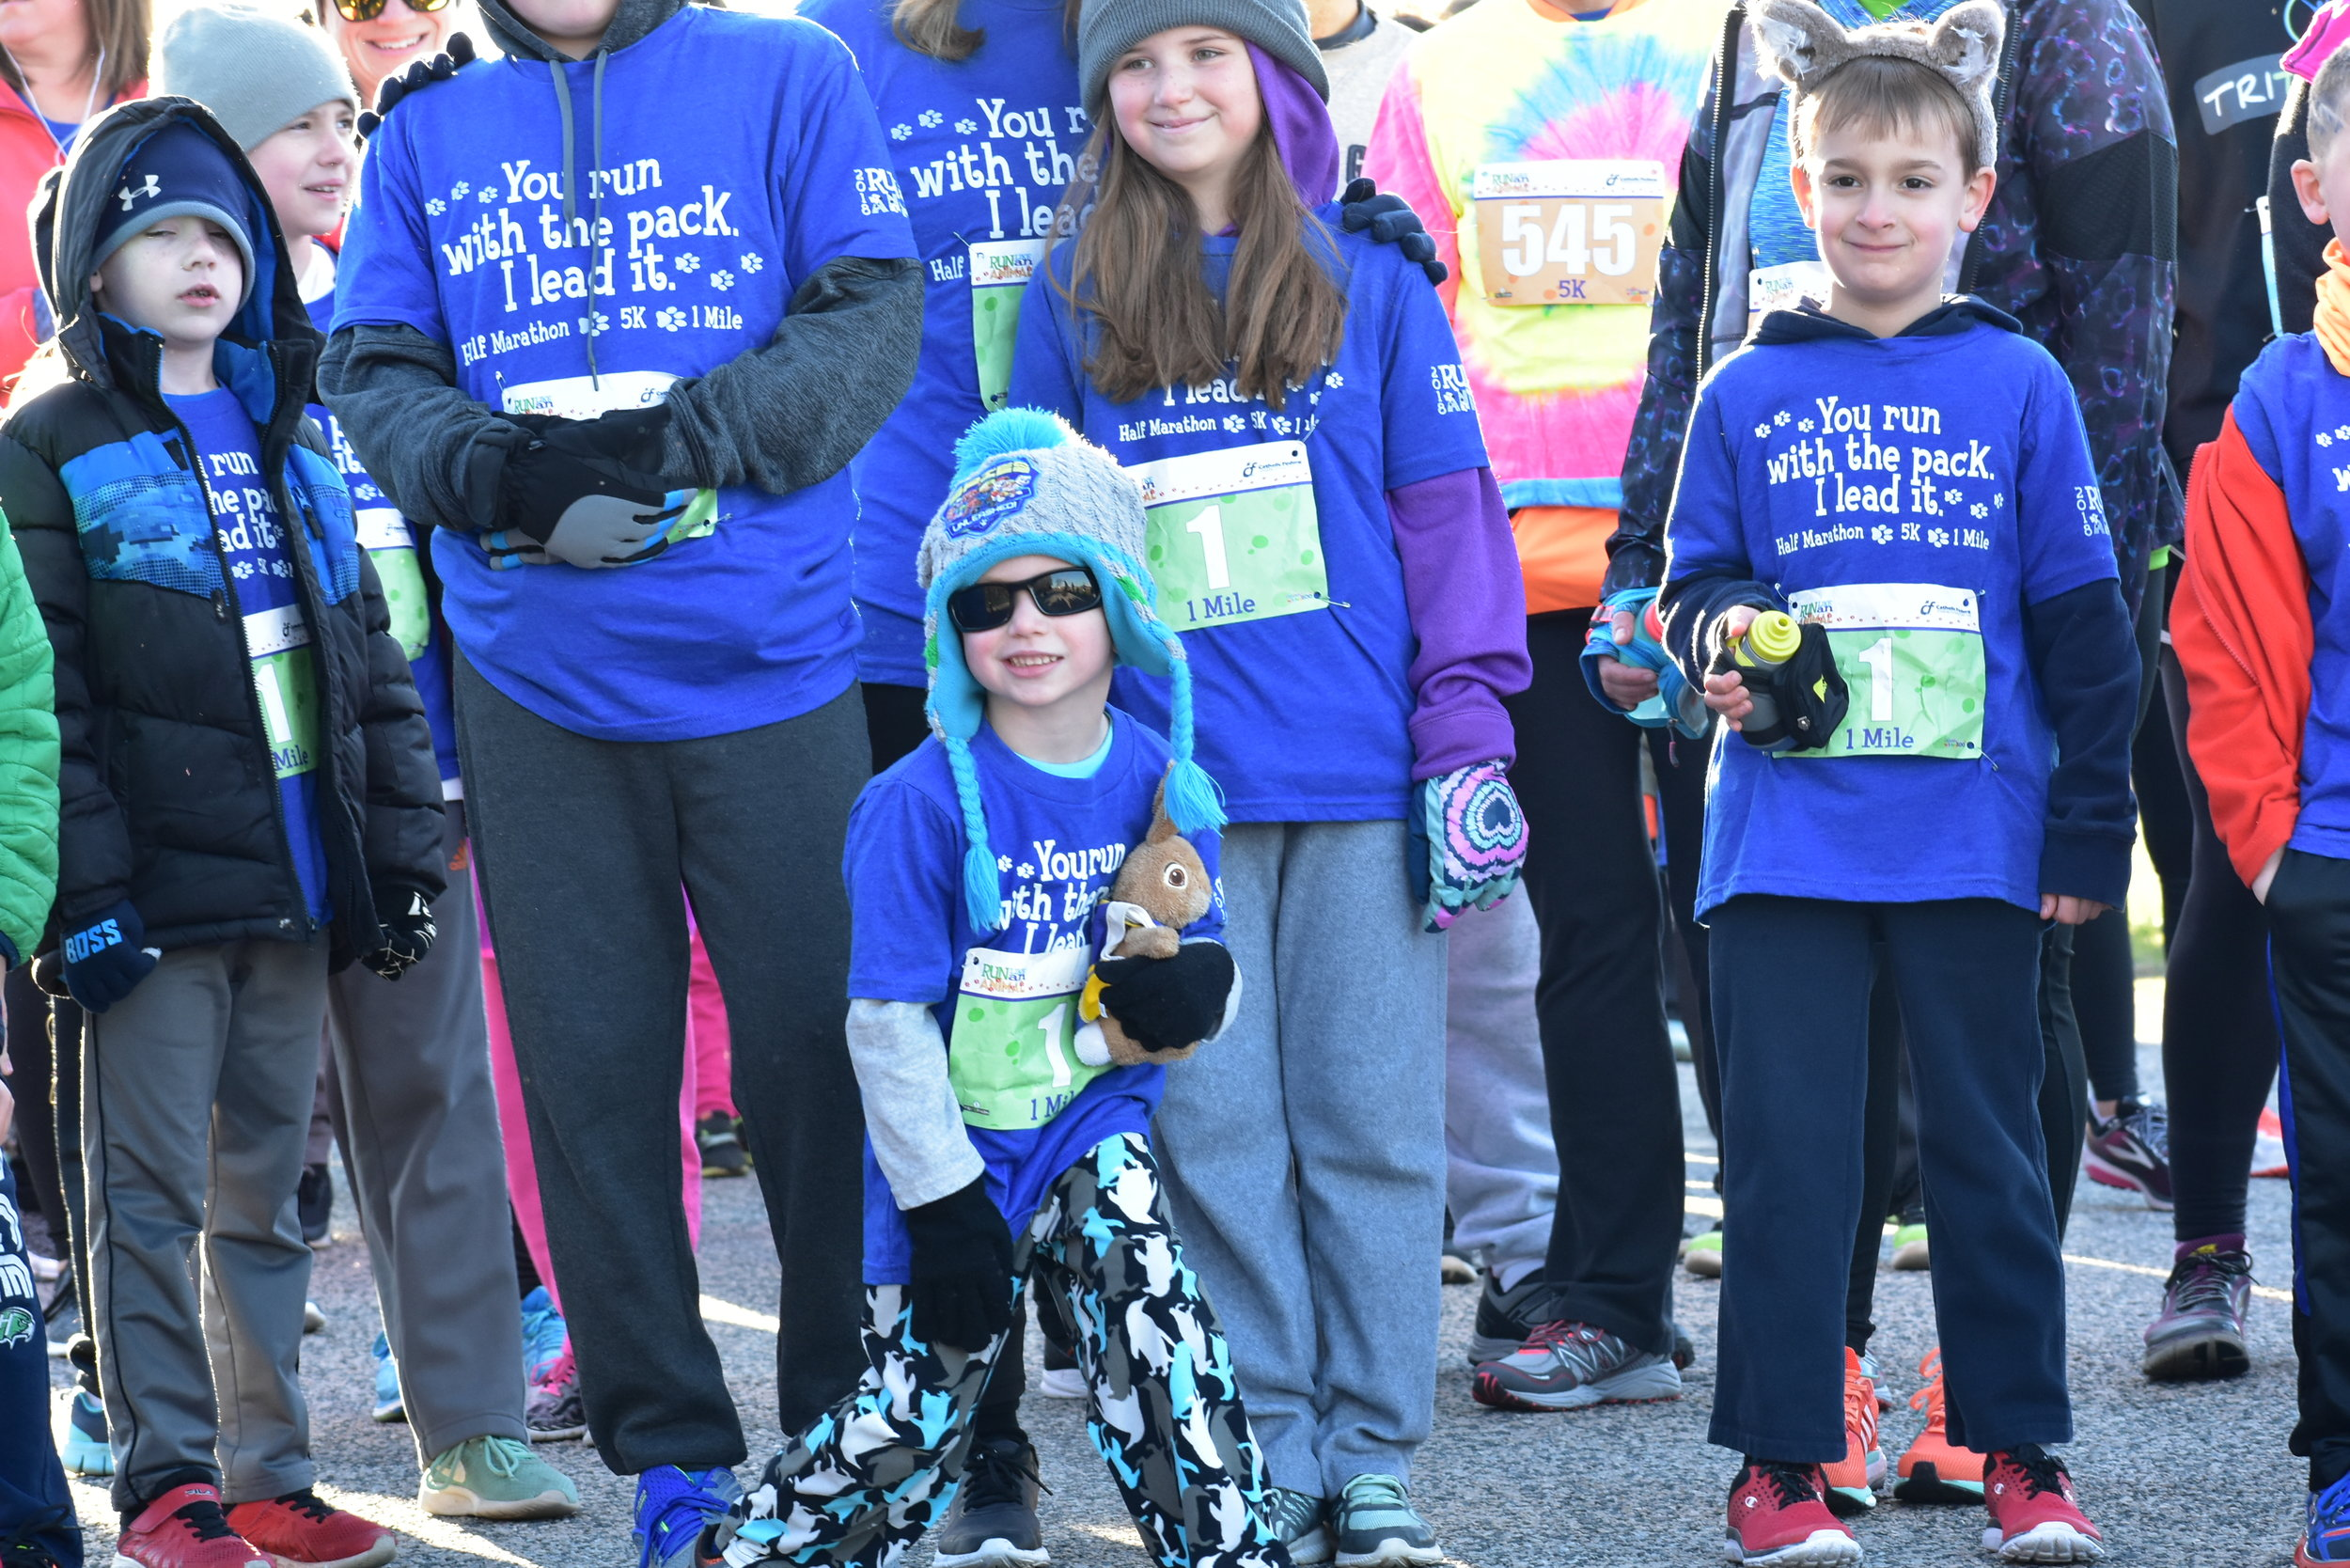 2018 Run Like an Animal - 1 Mile Fun Run by Heidi 004.JPG